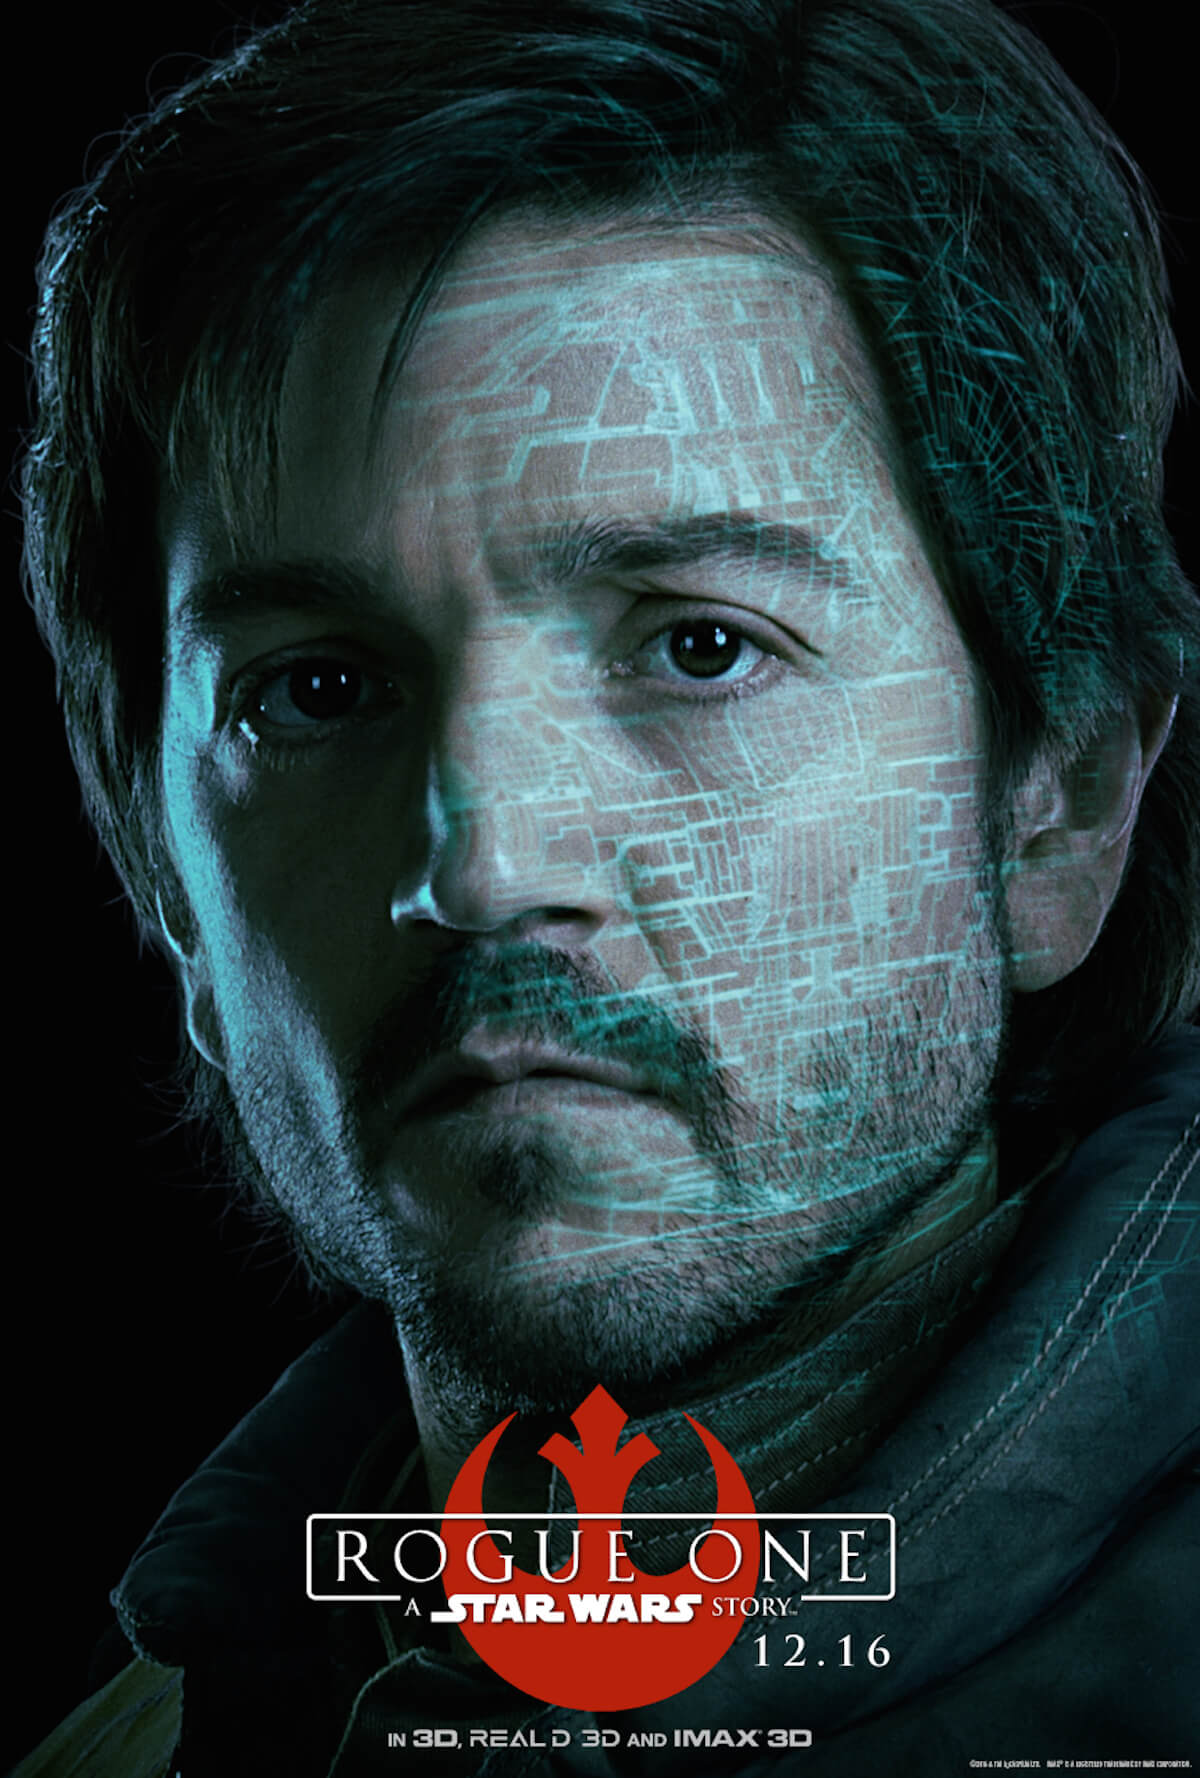 Rogue one poster diego luna